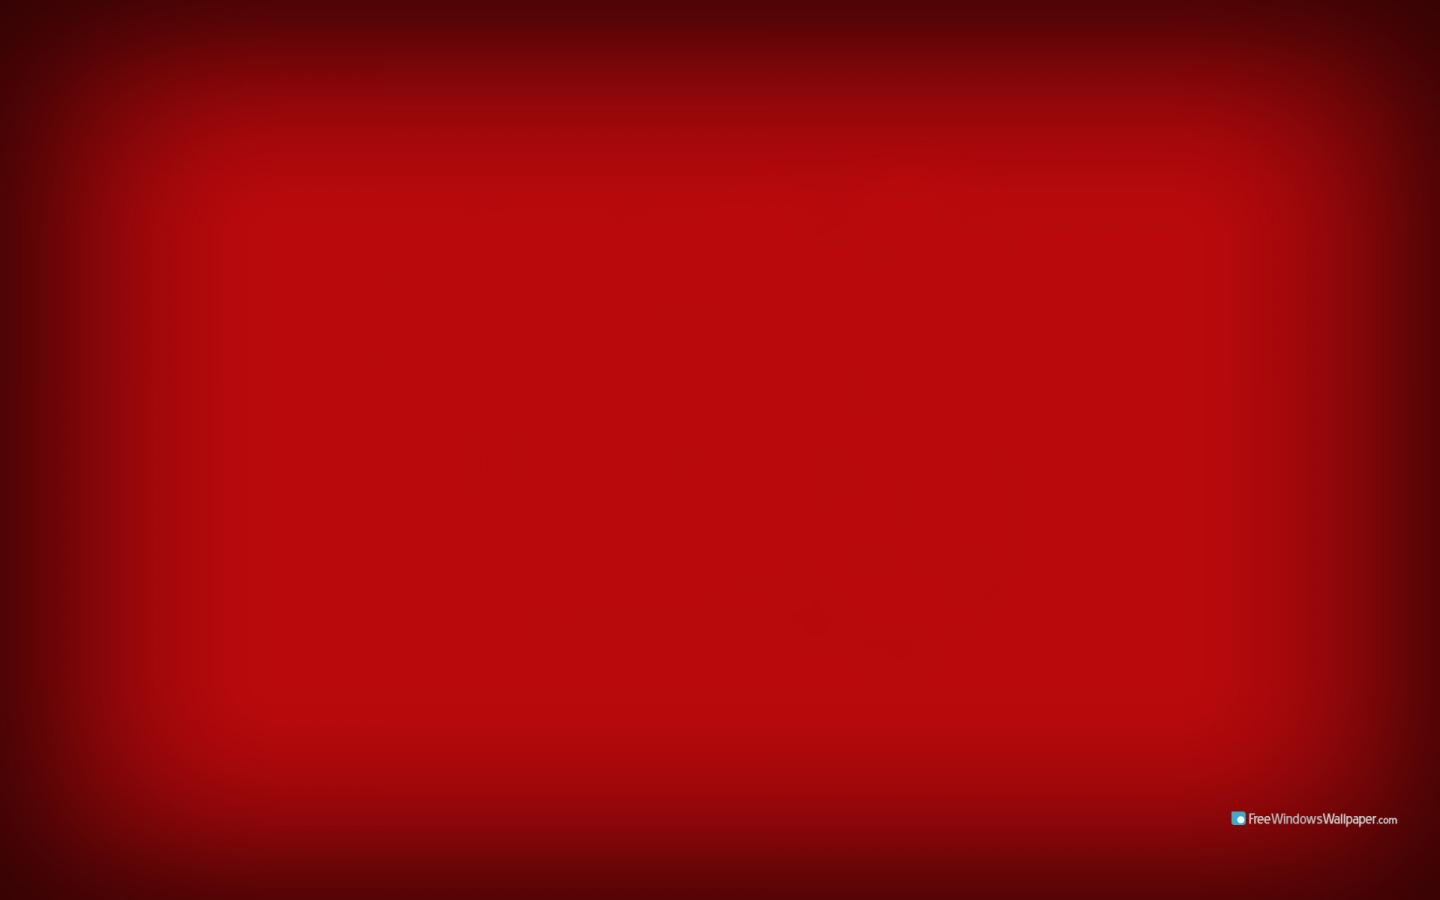 1440x900 | Red Computer Wallpaper | Solid Red Wallpaper